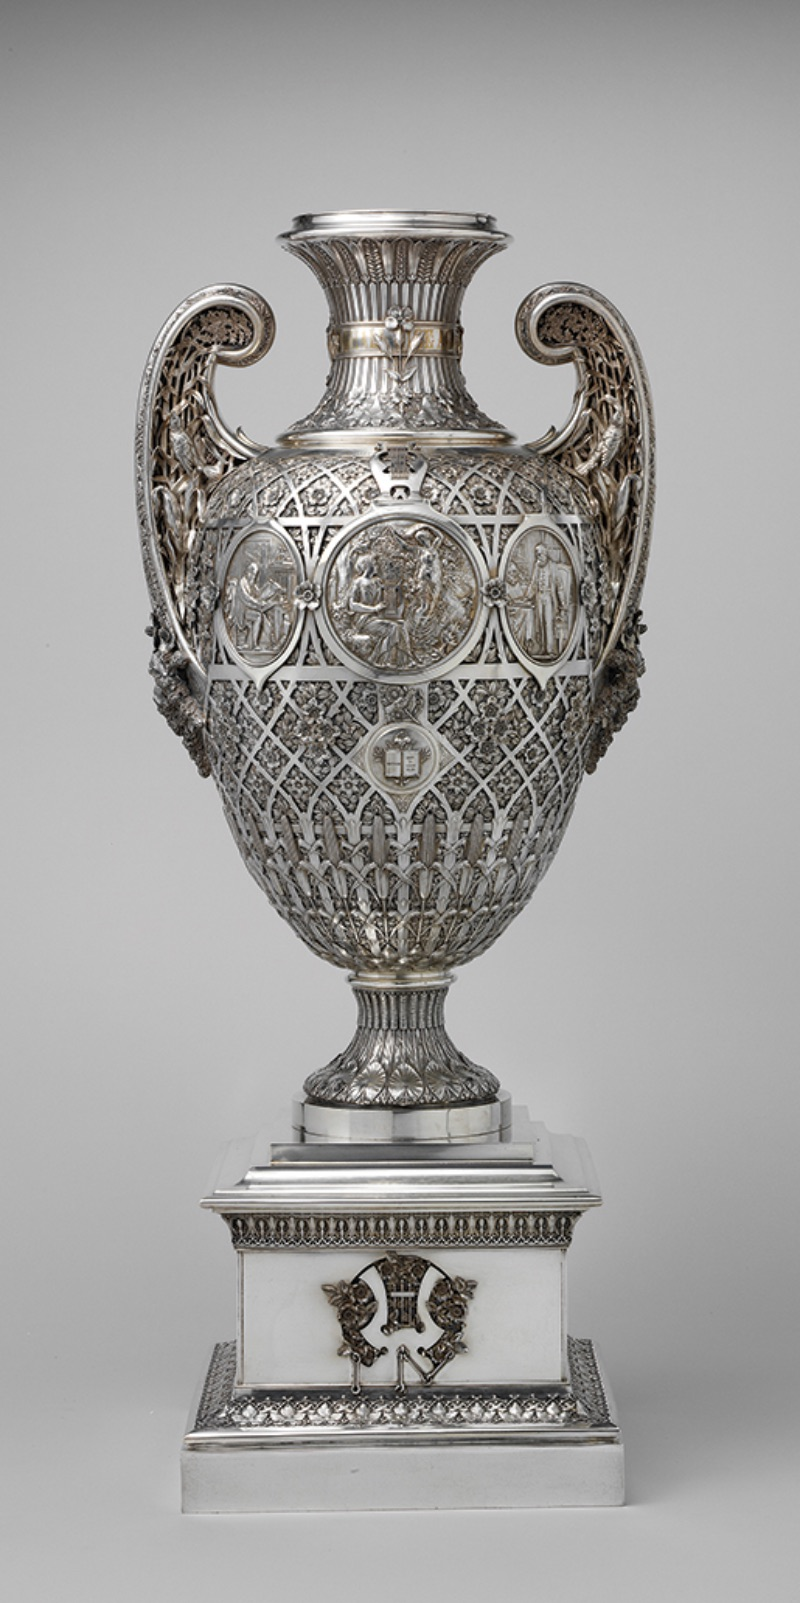 Bryant Vase, 1876, silver and gold, 33 1⁄2 x 14 x 11 5⁄16 in.